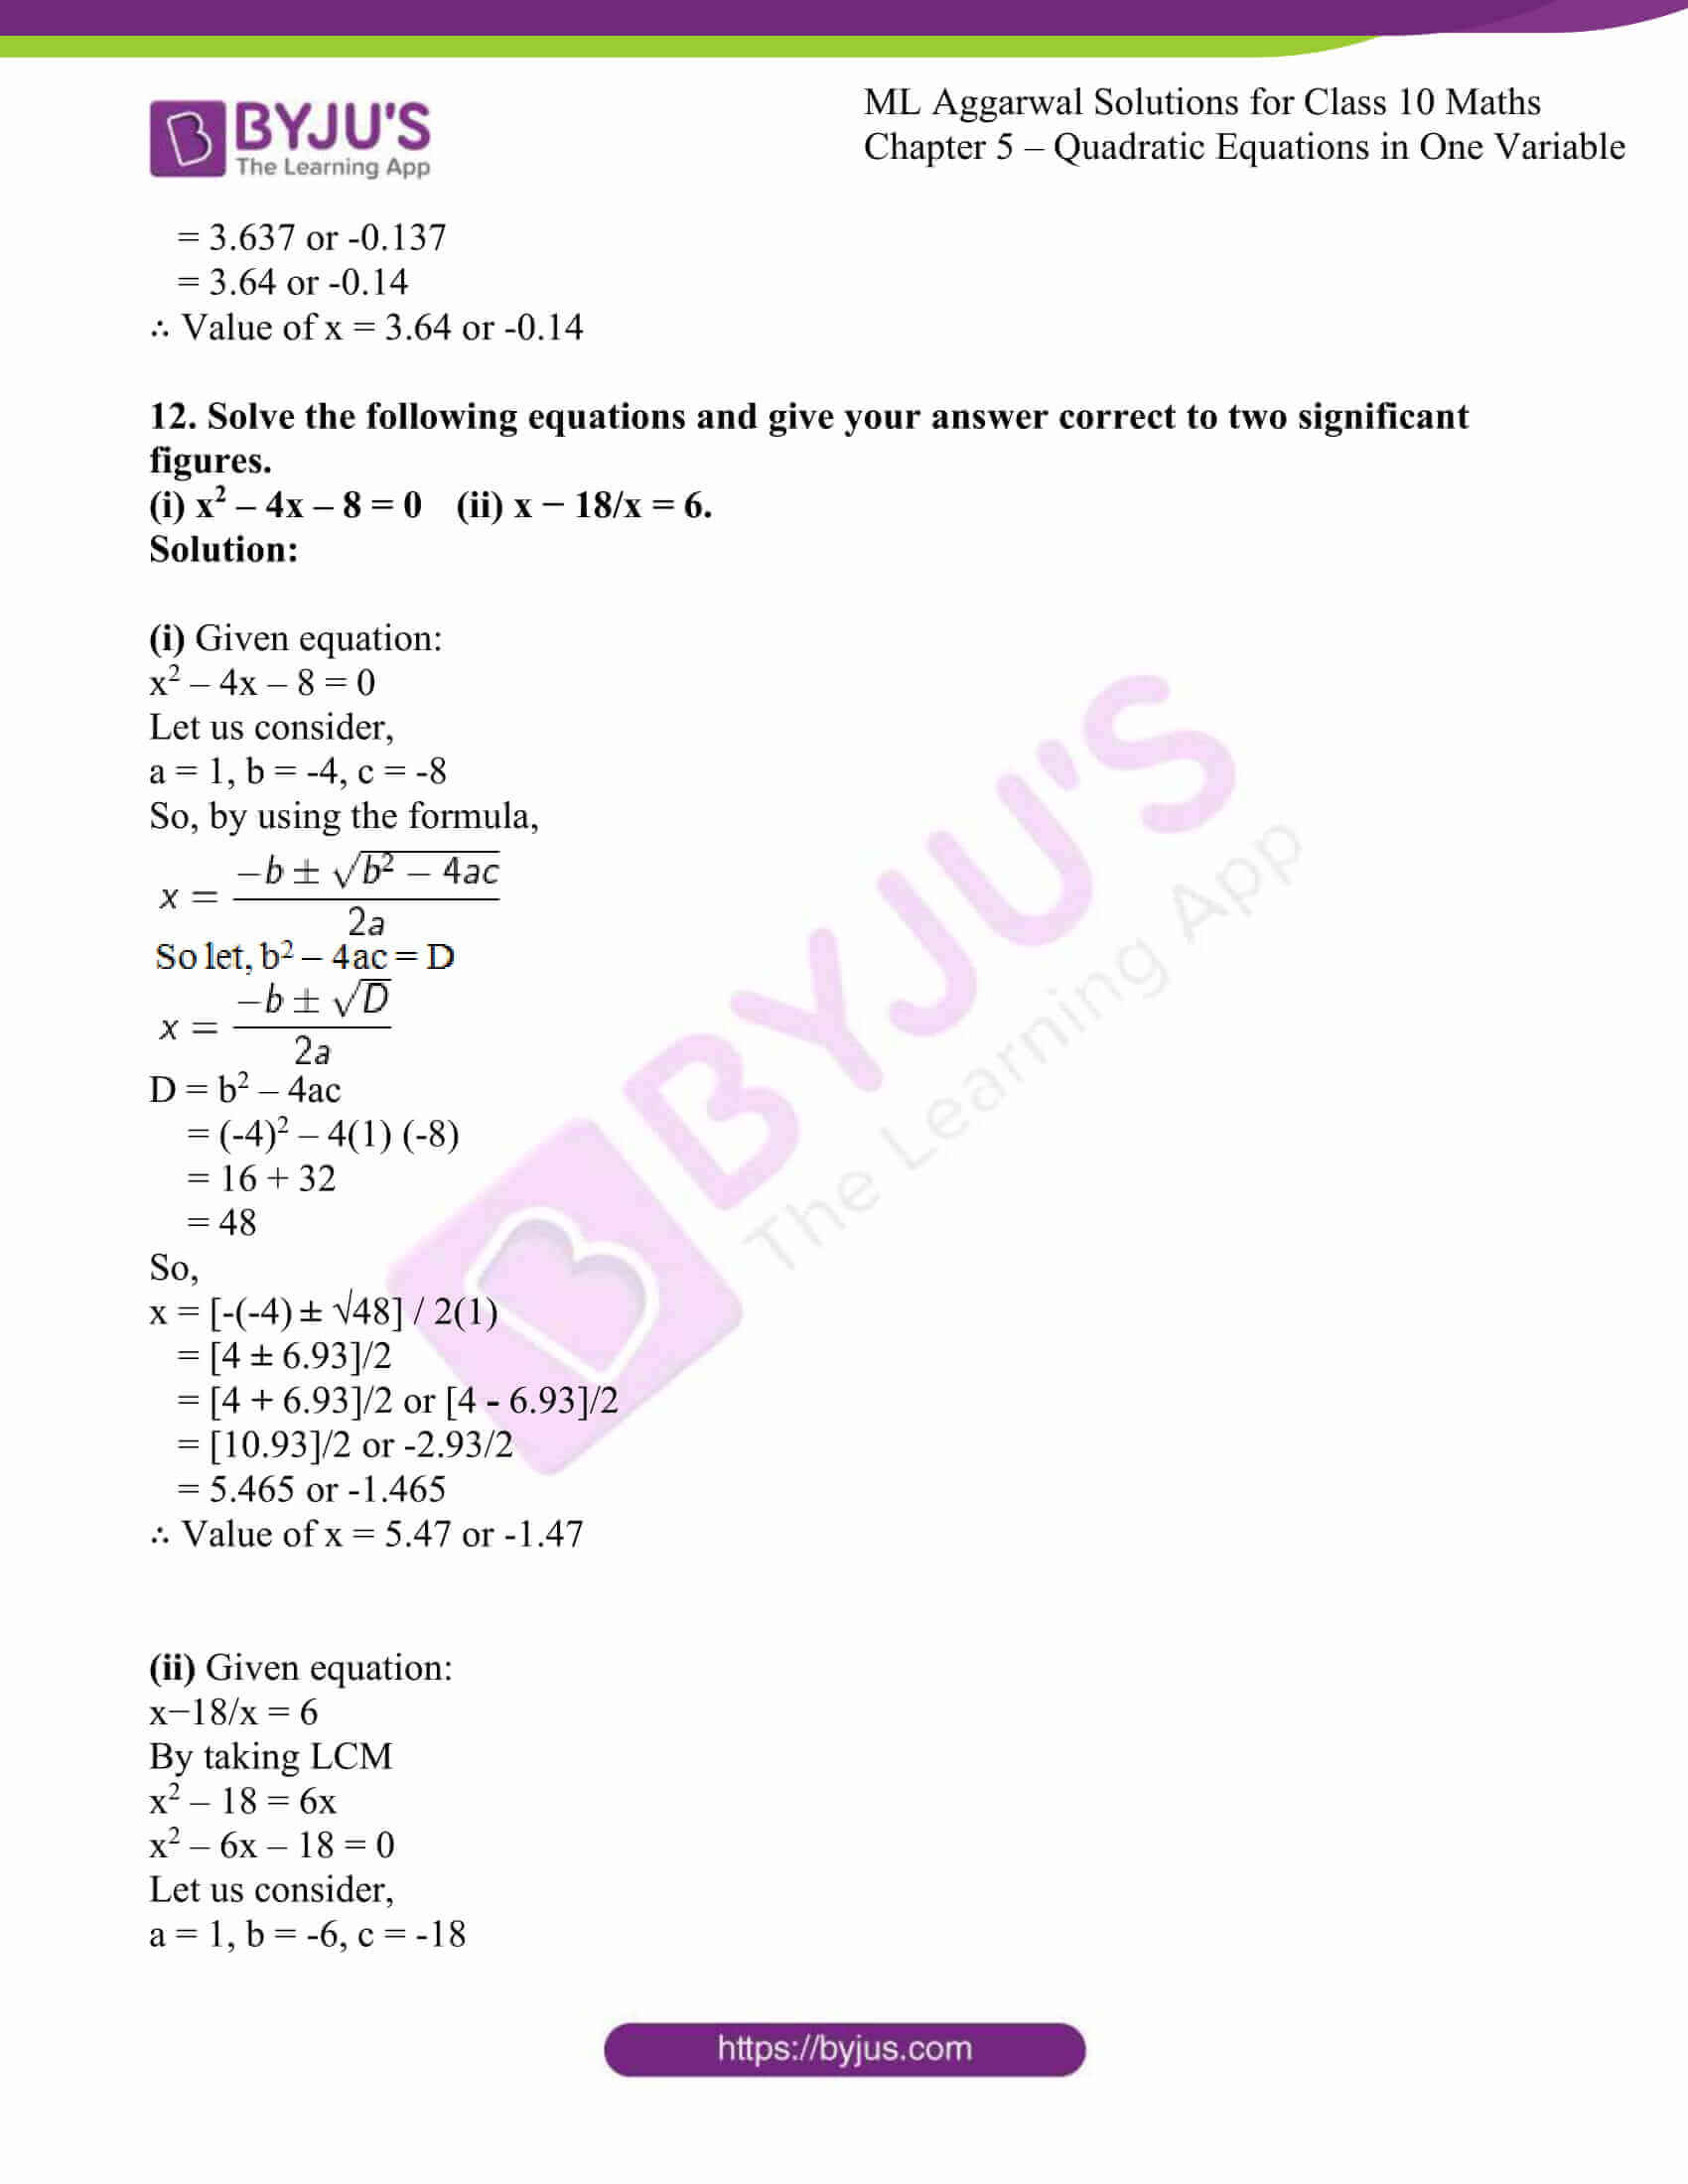 ml aggarwal solutions class 10 maths chapter 5 35